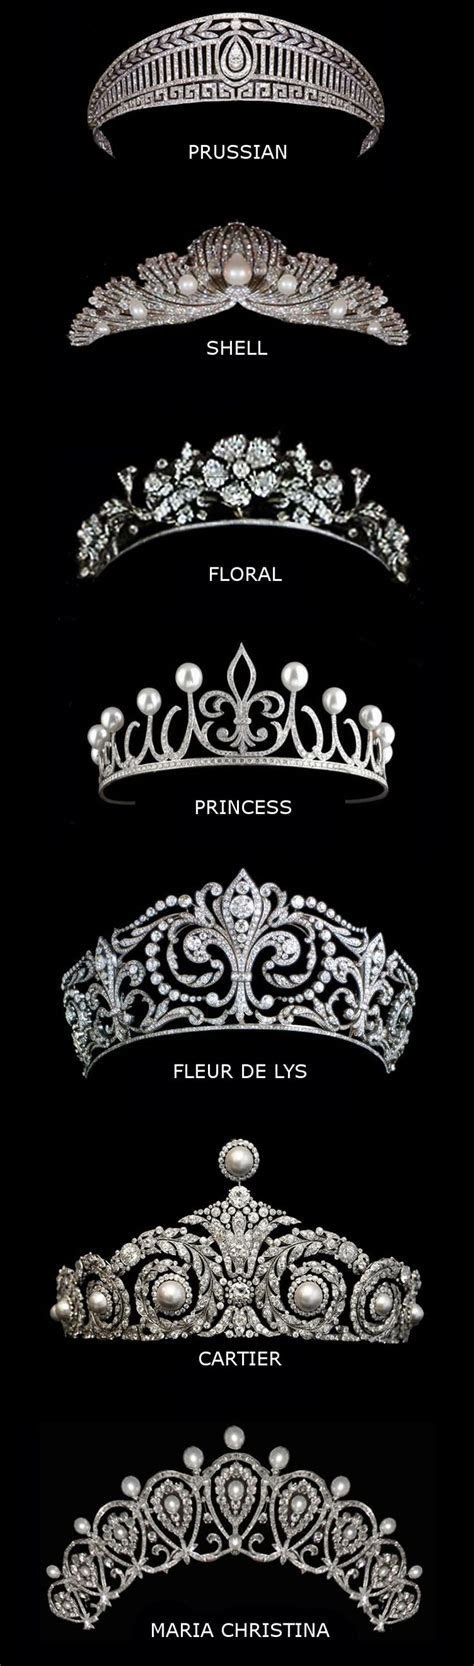 25  best ideas about Royal tiaras on Pinterest   Crown